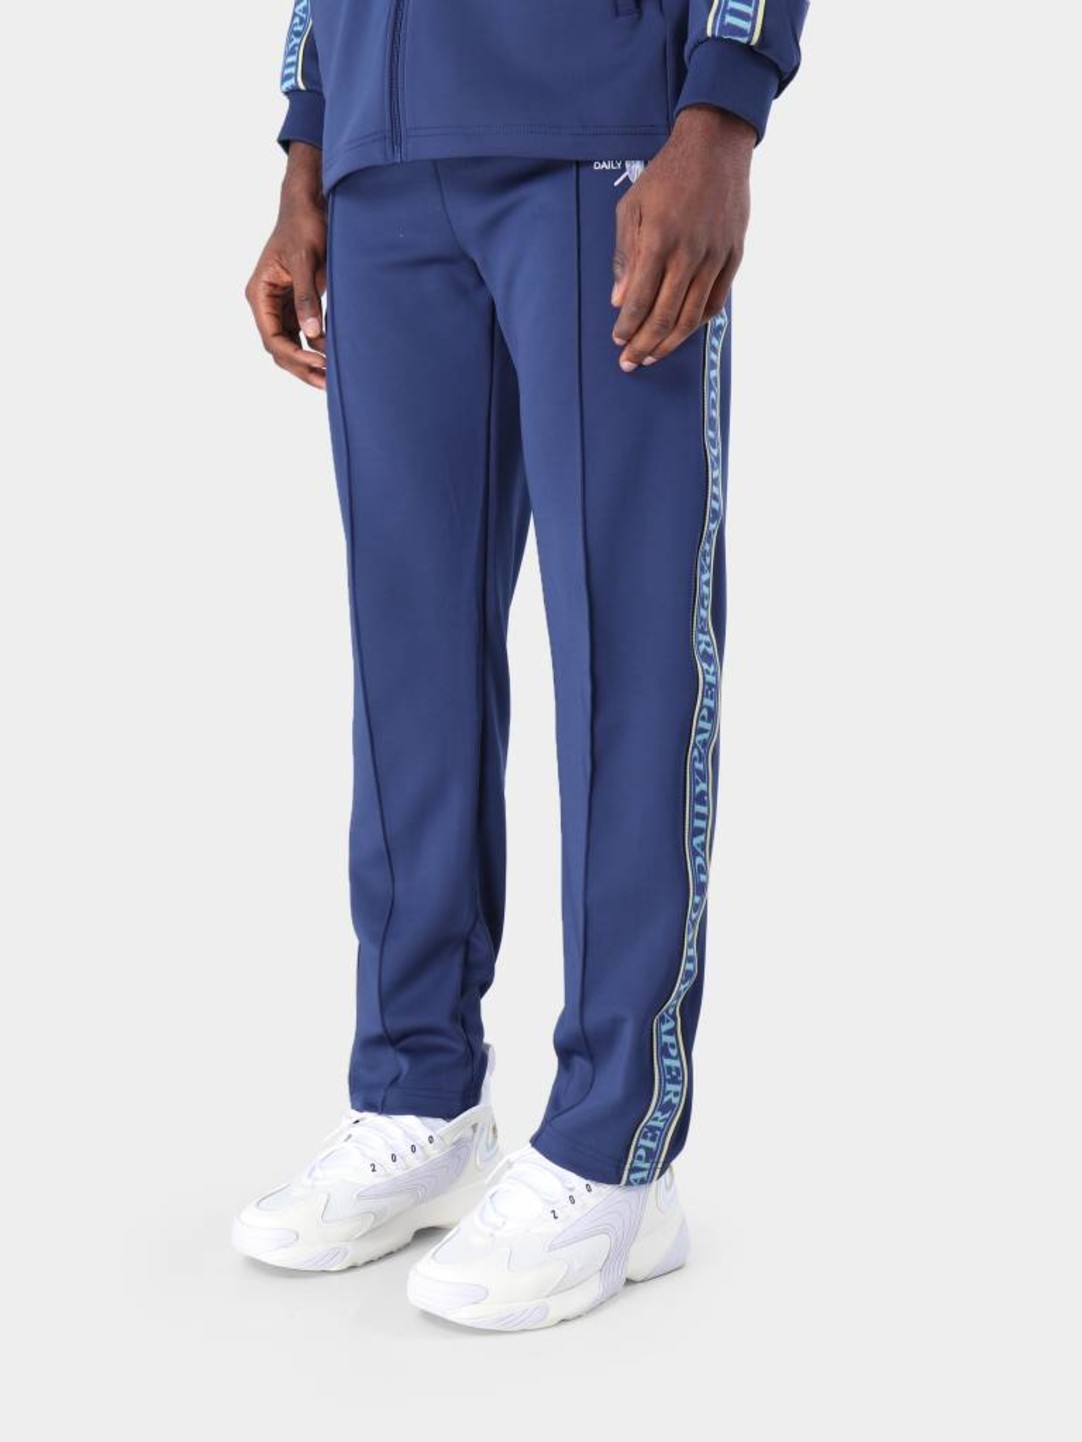 Daily Paper Daily Paper Liba Pant Blue 19S1PA12-02